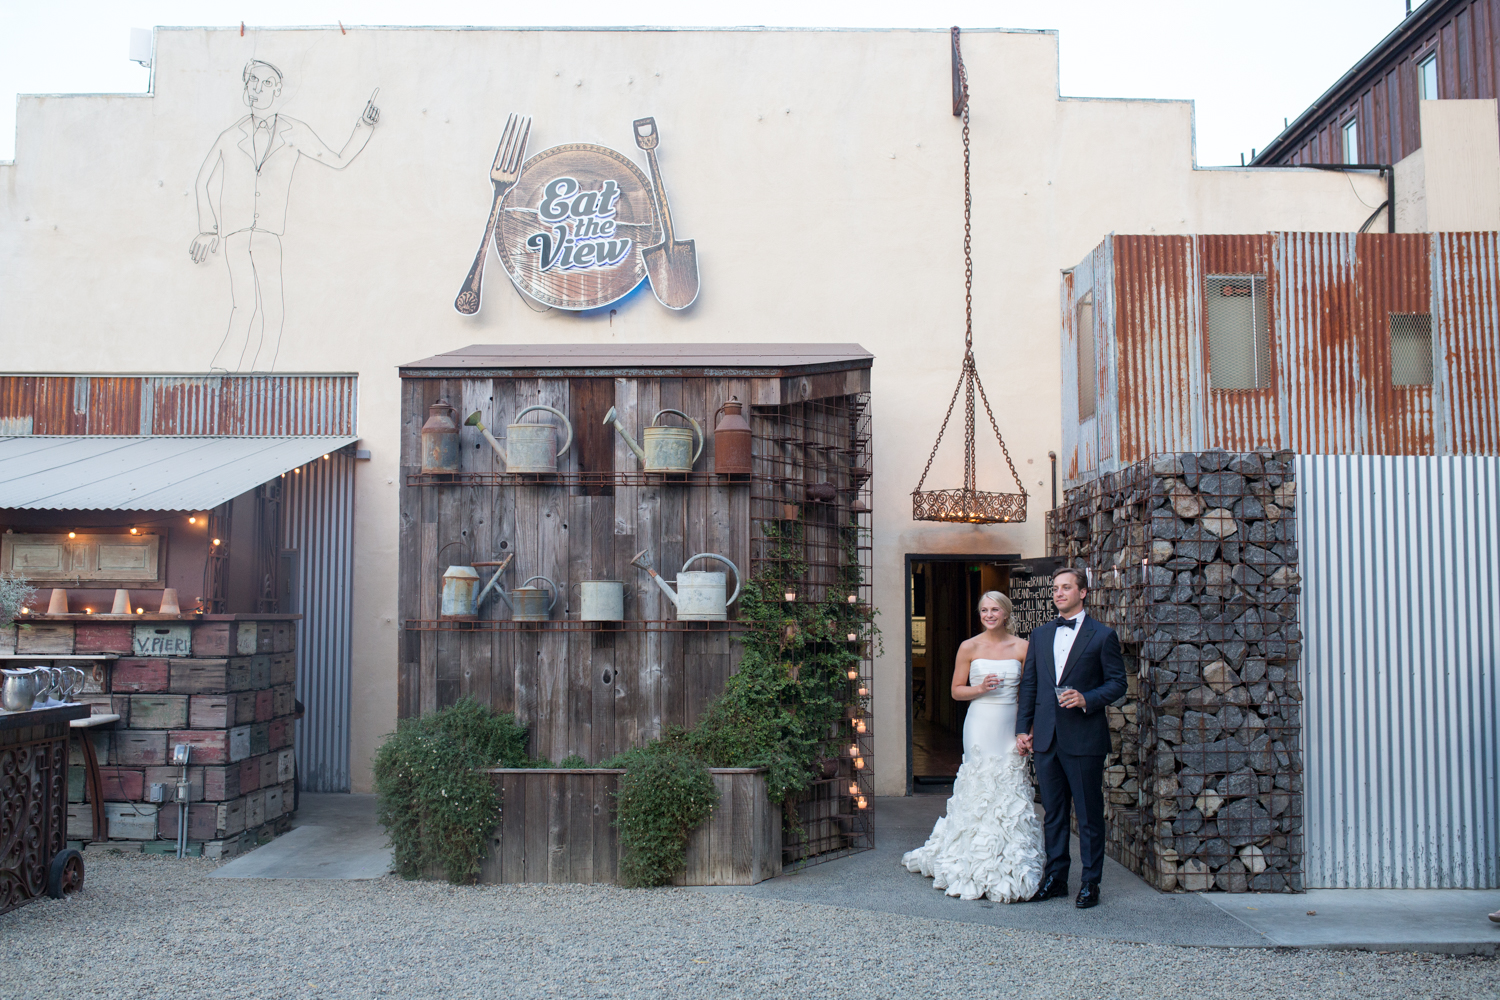 napawedding_sfweddingphotographer_napaweddingvenue_barndiva_sfbrideandgroom.jpg